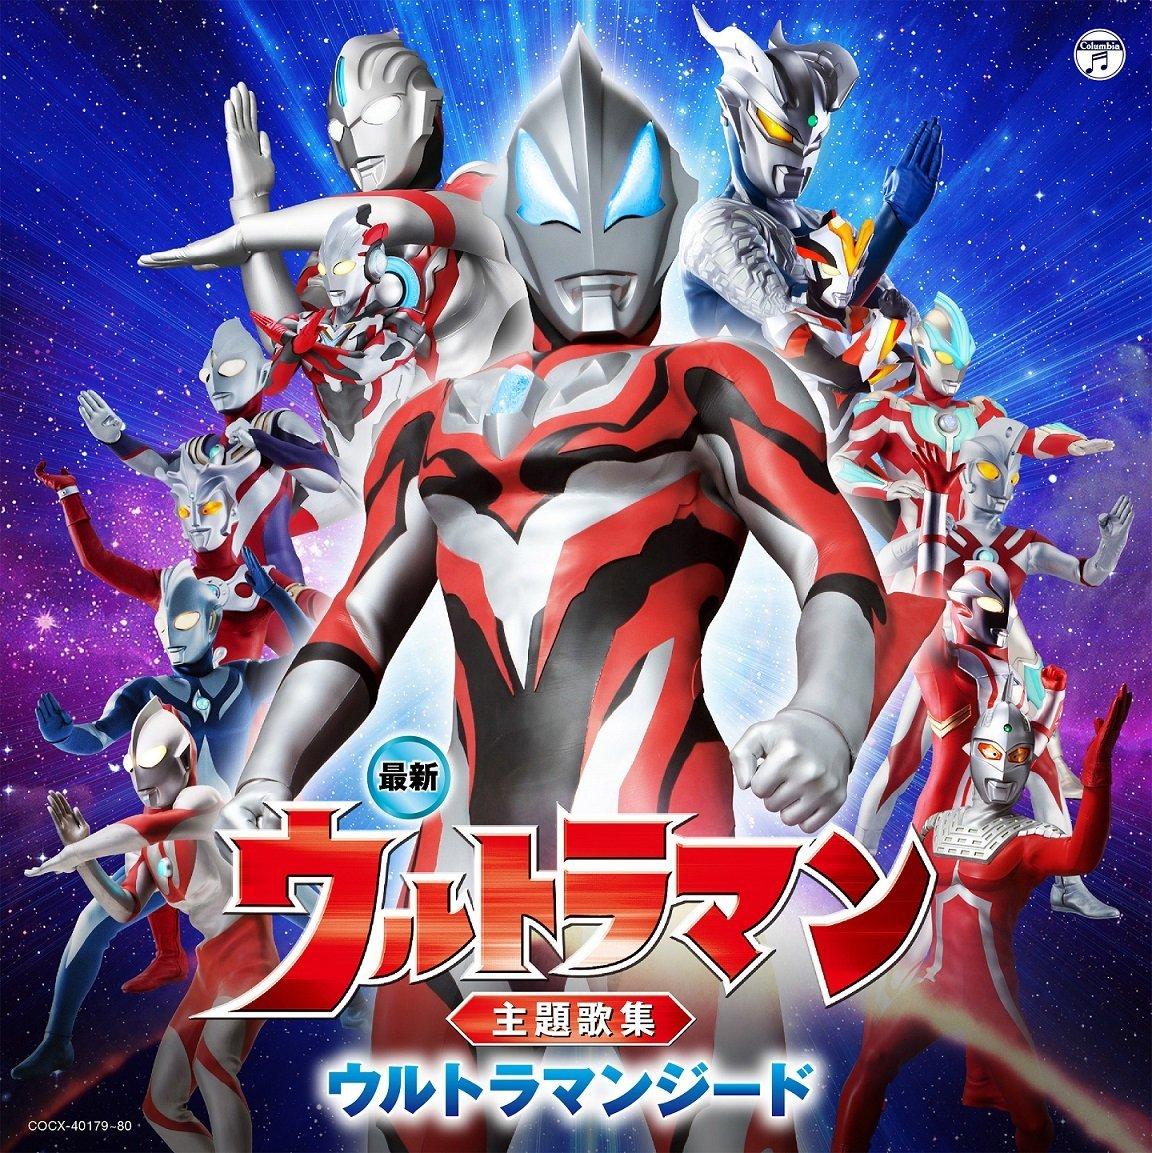 Download Game Pc Ultraman Fighting Evolution 3 Ps22 Chorus ...